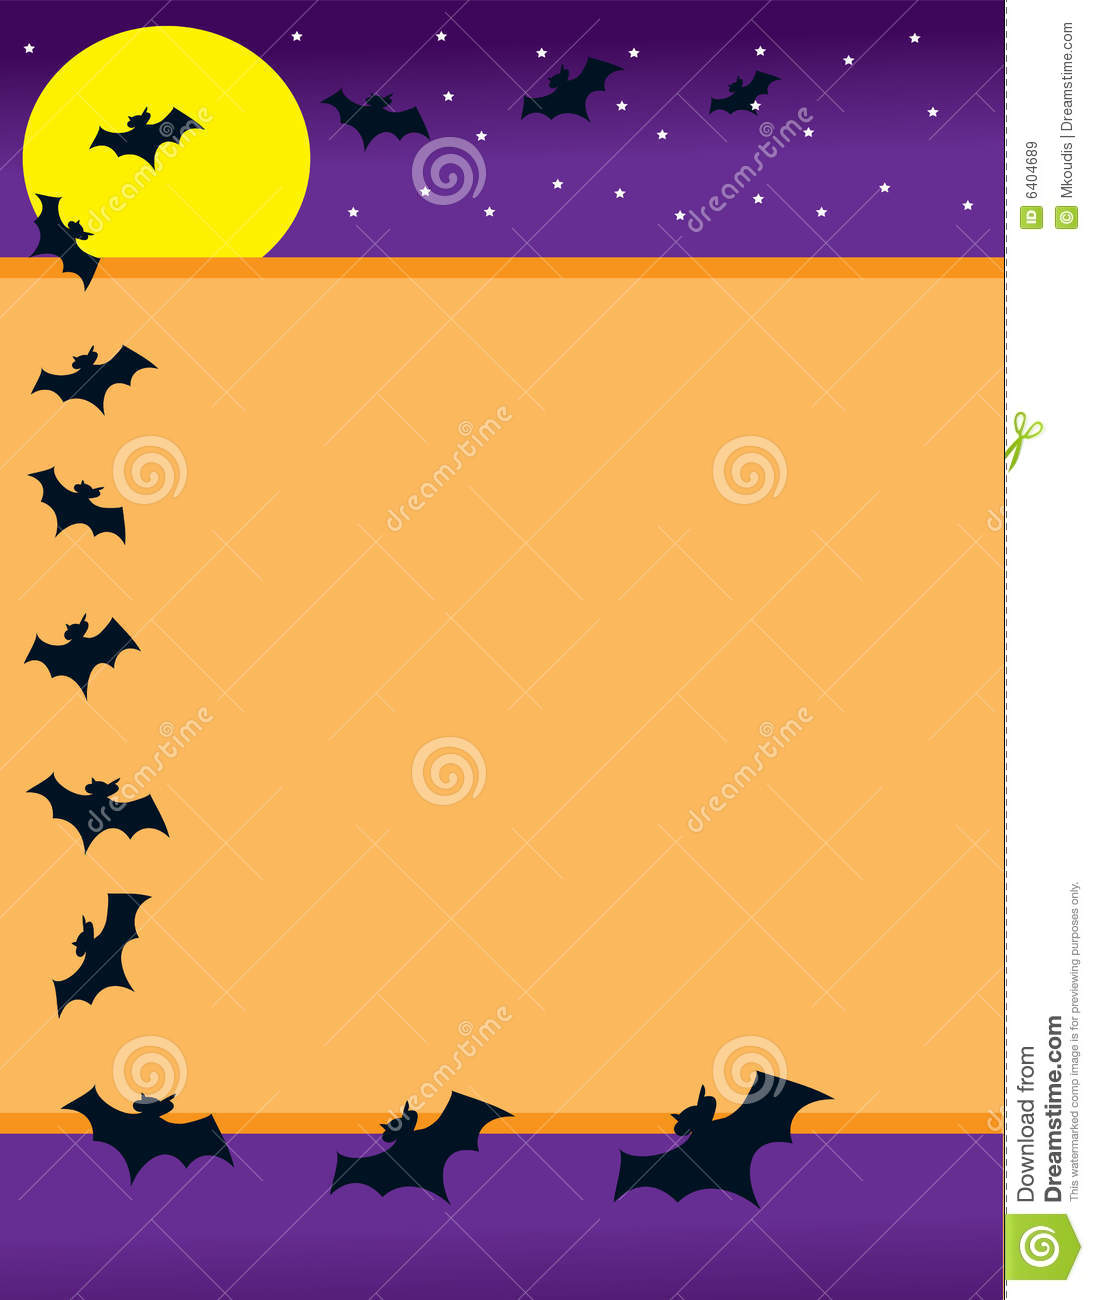 halloween background with a bright yellow moon, stars and a border ...